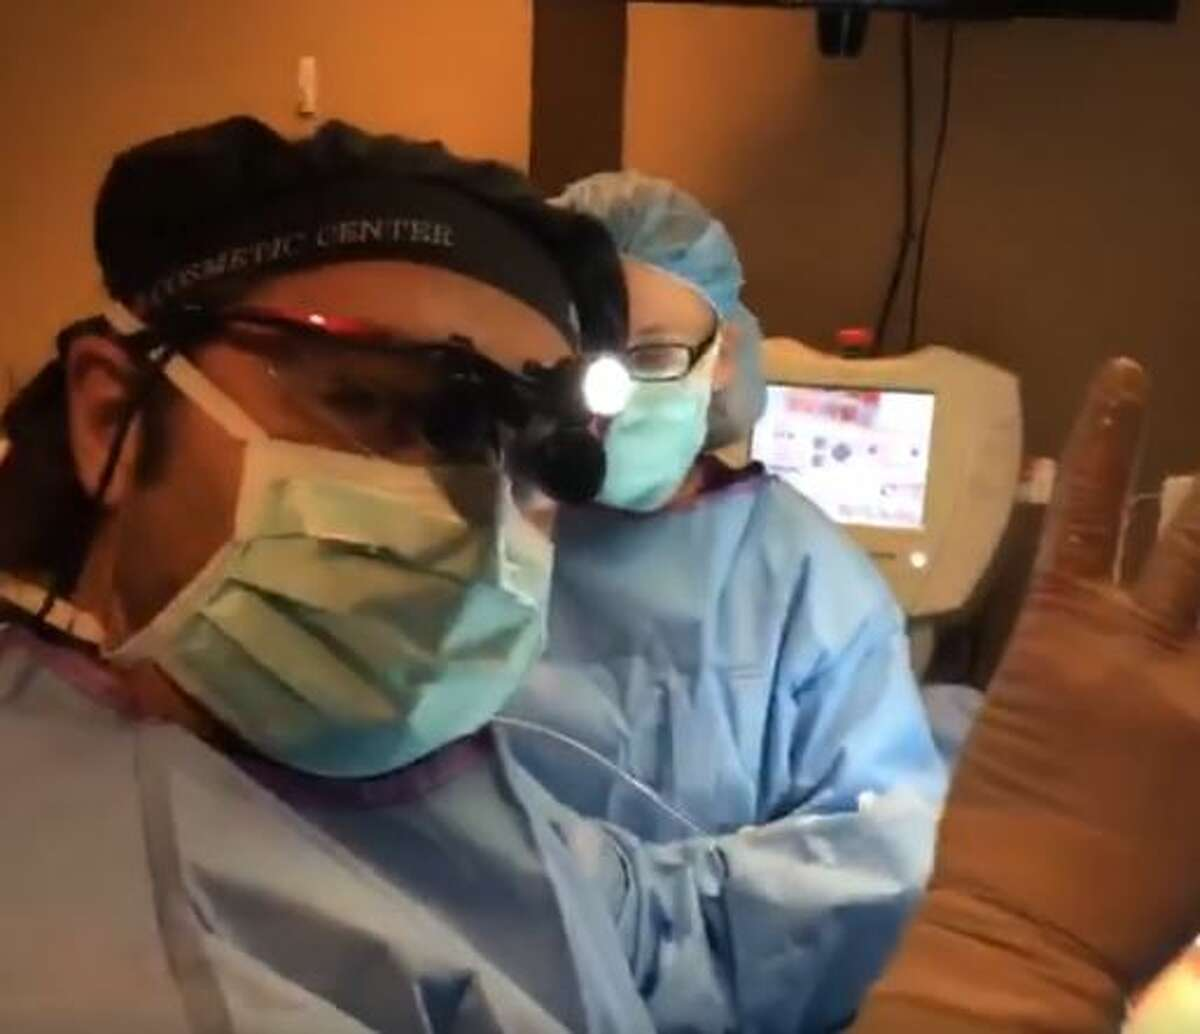 San Antonio's Dr. Thomas Jeneby is getting attention from clients for his practice of broadcasting surgeries on Facebook Live and Snapchat.